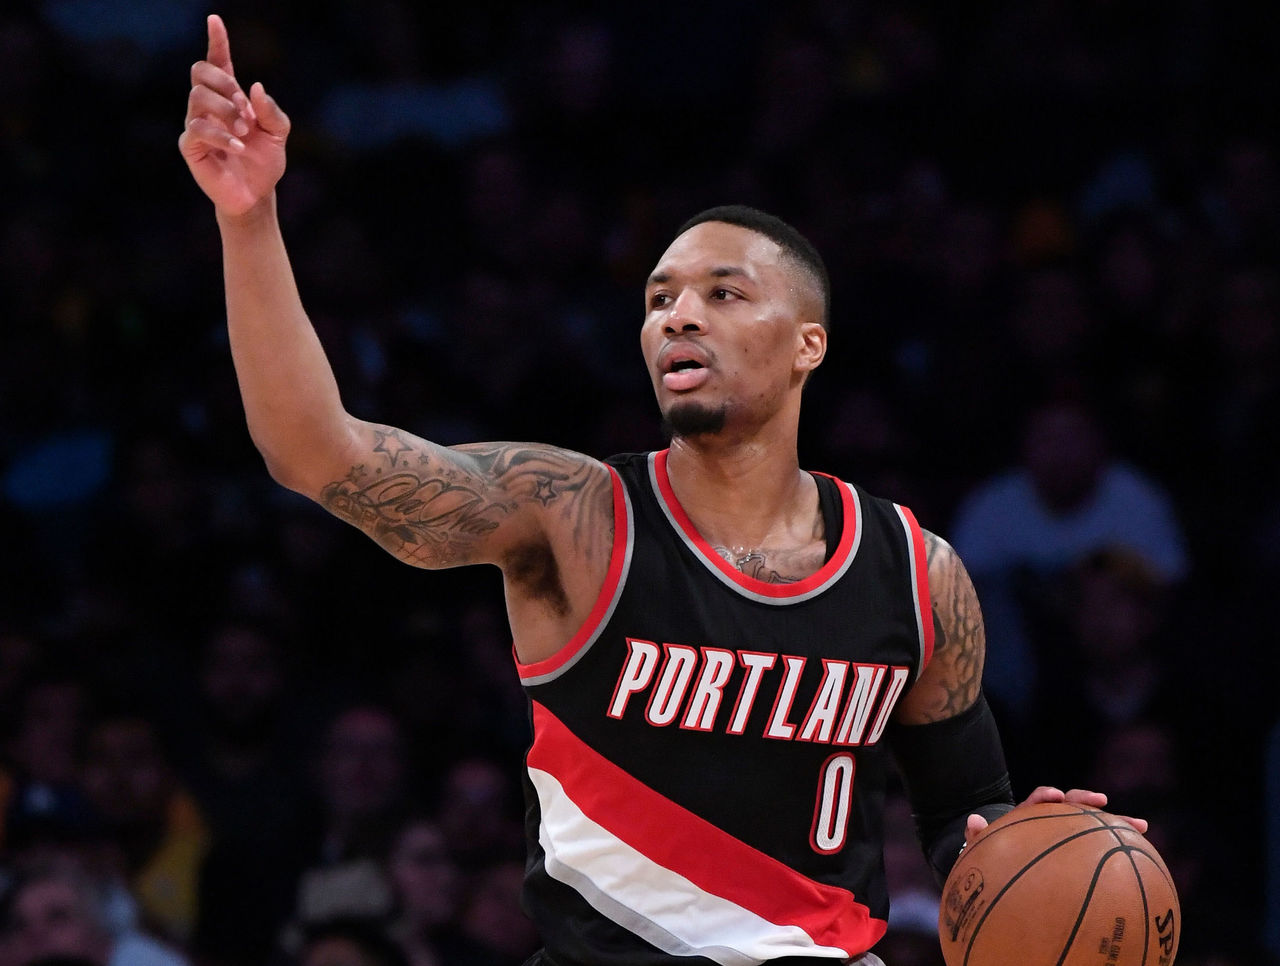 Cropped 2017 03 27t042217z 1031527710 nocid rtrmadp 3 nba portland trail blazers at los angeles lakers